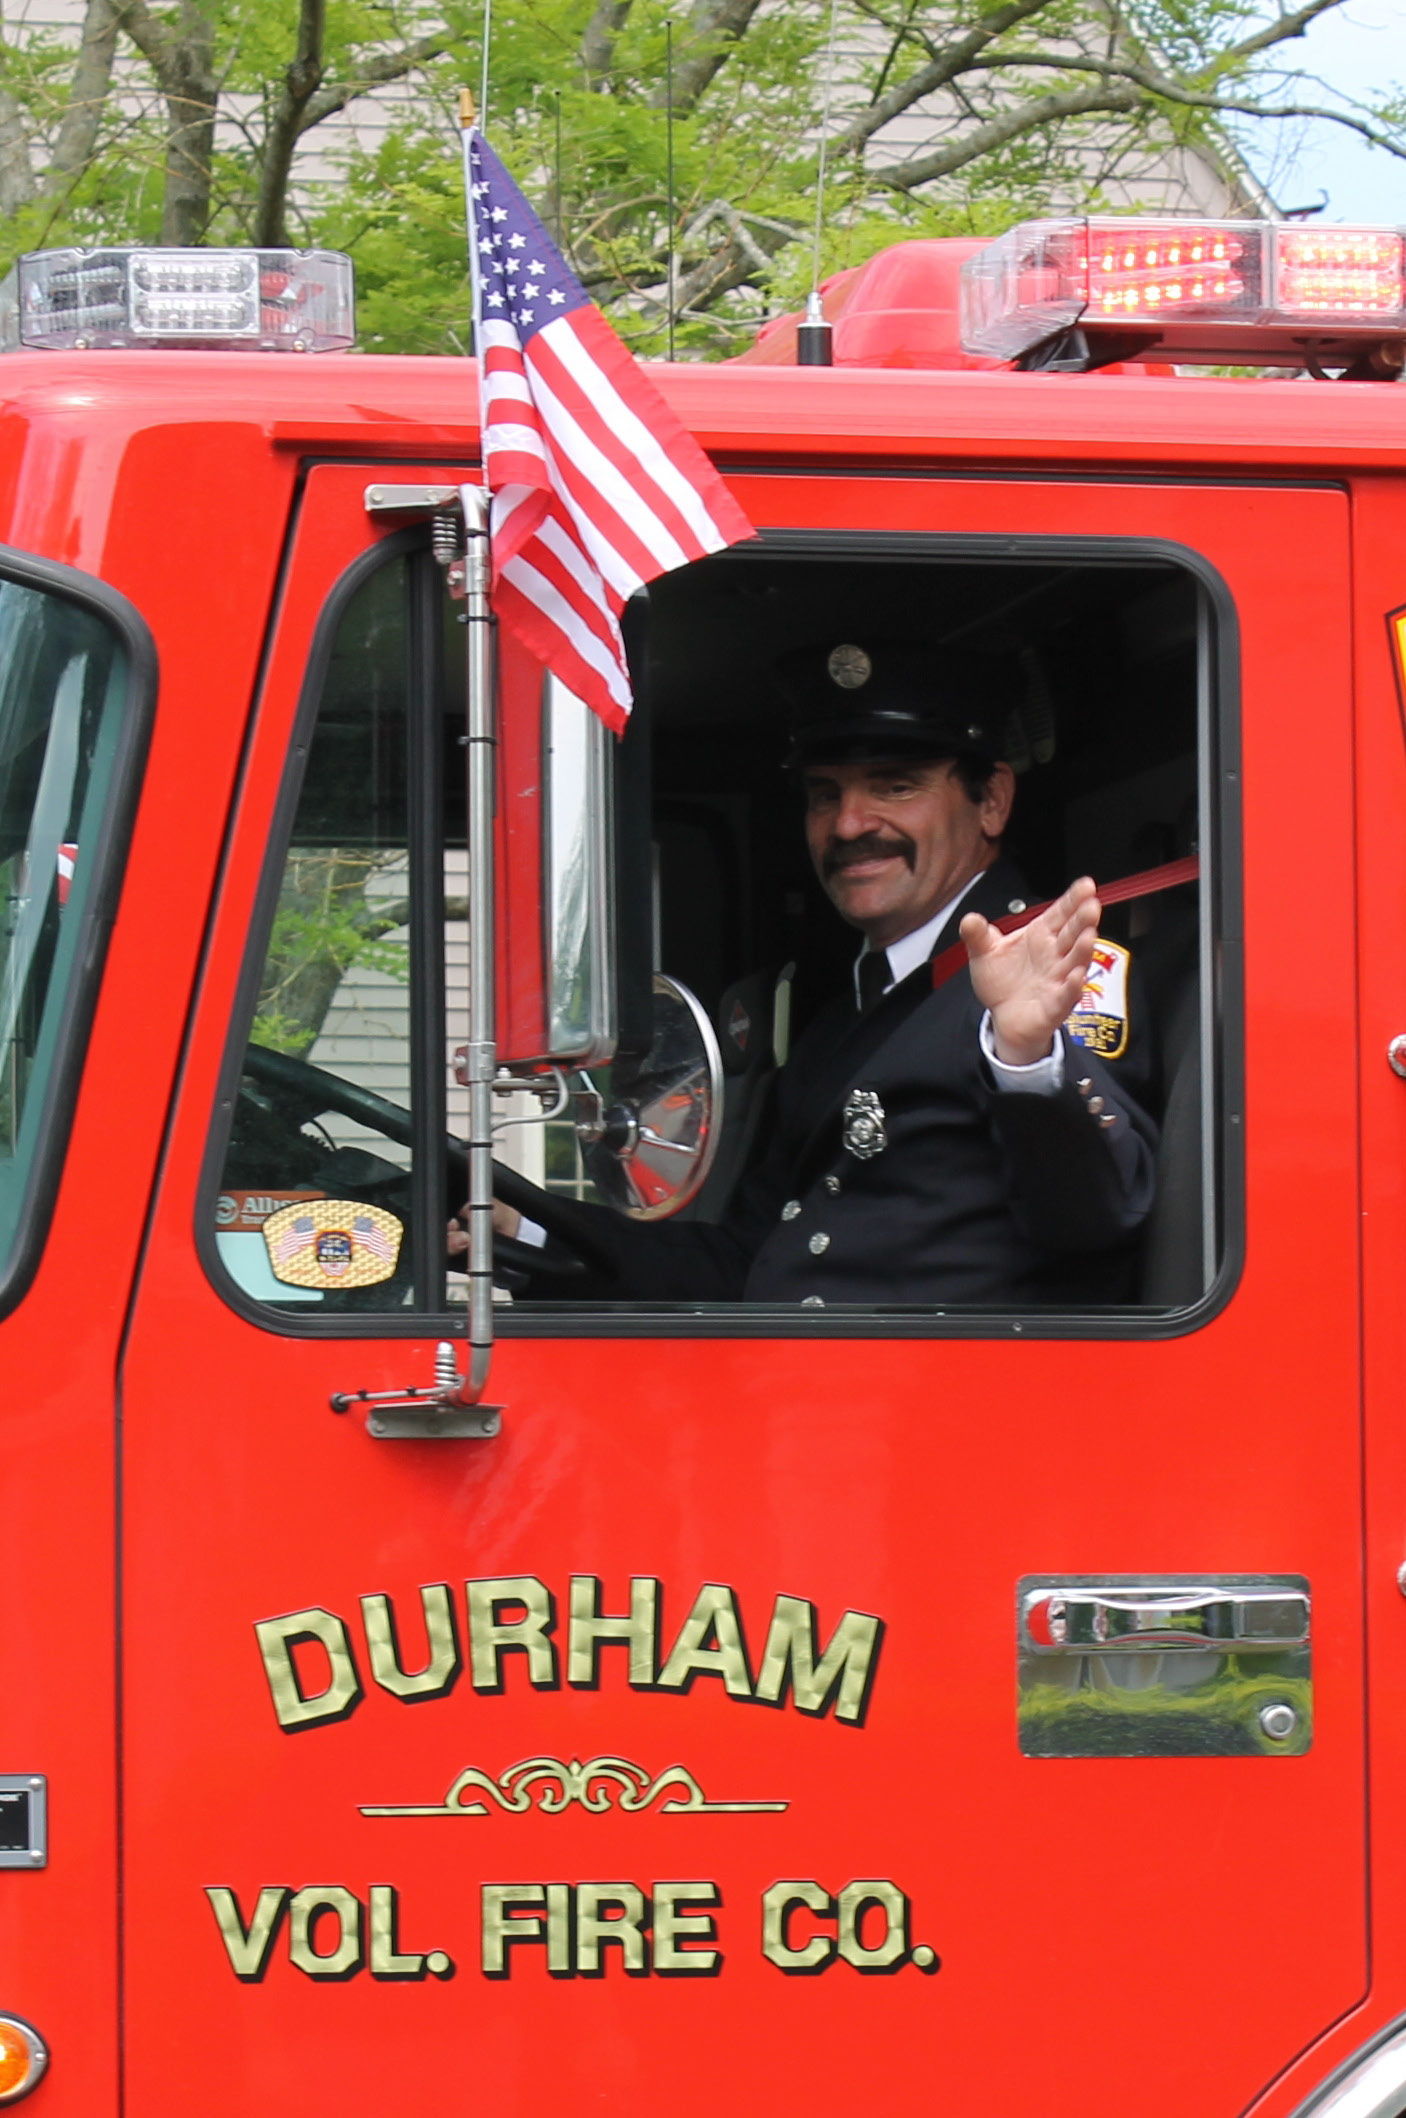 The fire trucks were a familiar site at the annual Memorial Day parade in Durham. | Mark Dionne / Town Times